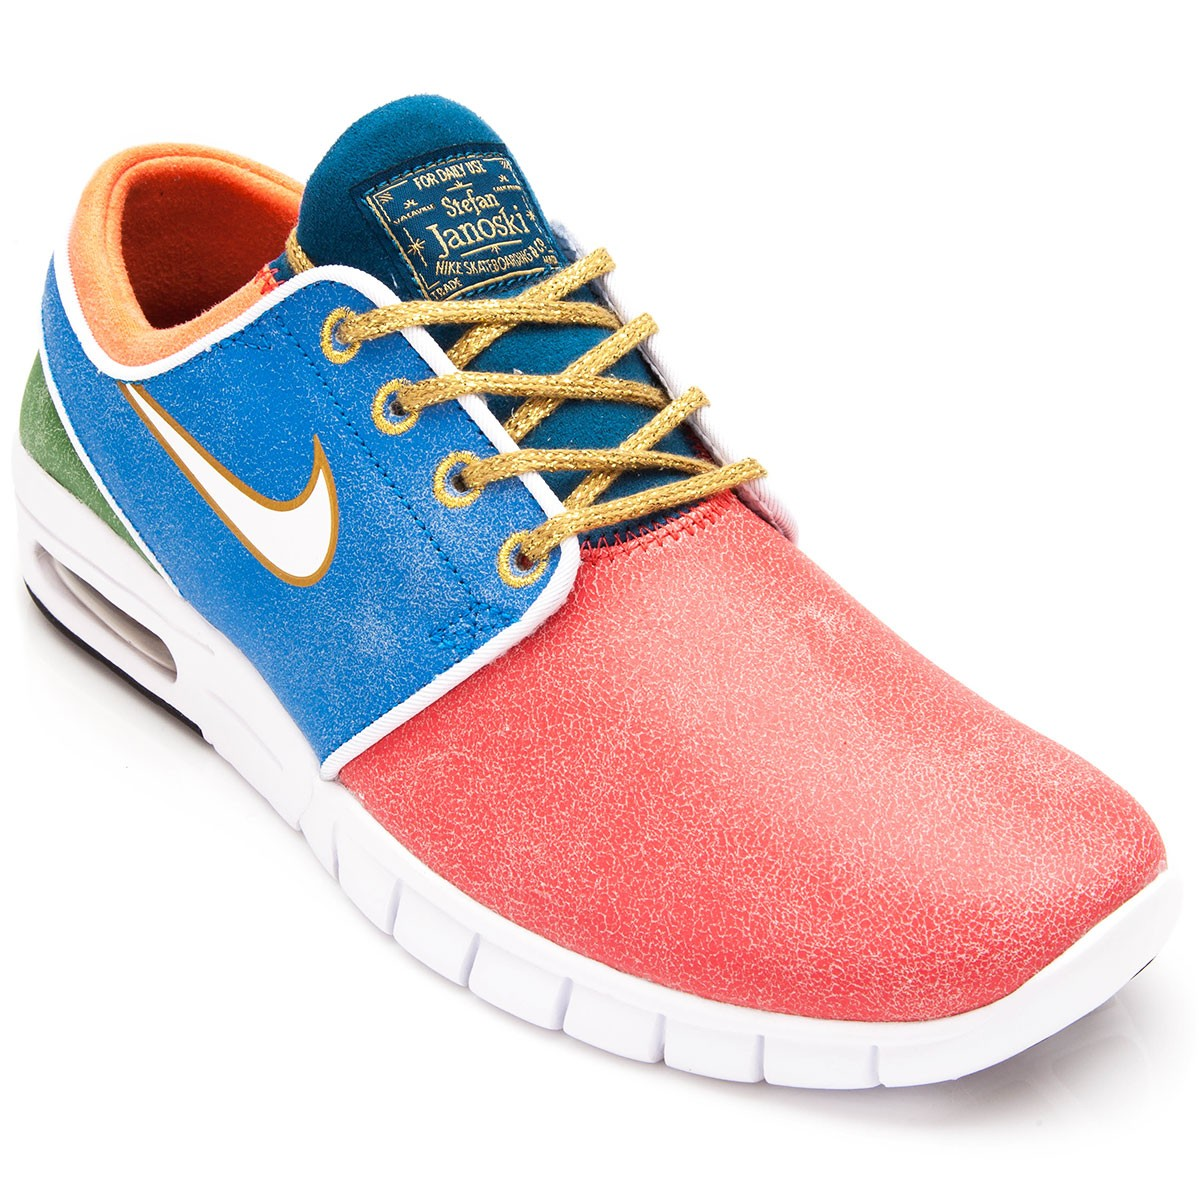 finest selection c1e73 f96bd ... coupon code for nike stefan janoski max l qs shoes rio blue green white  10.0 fd989